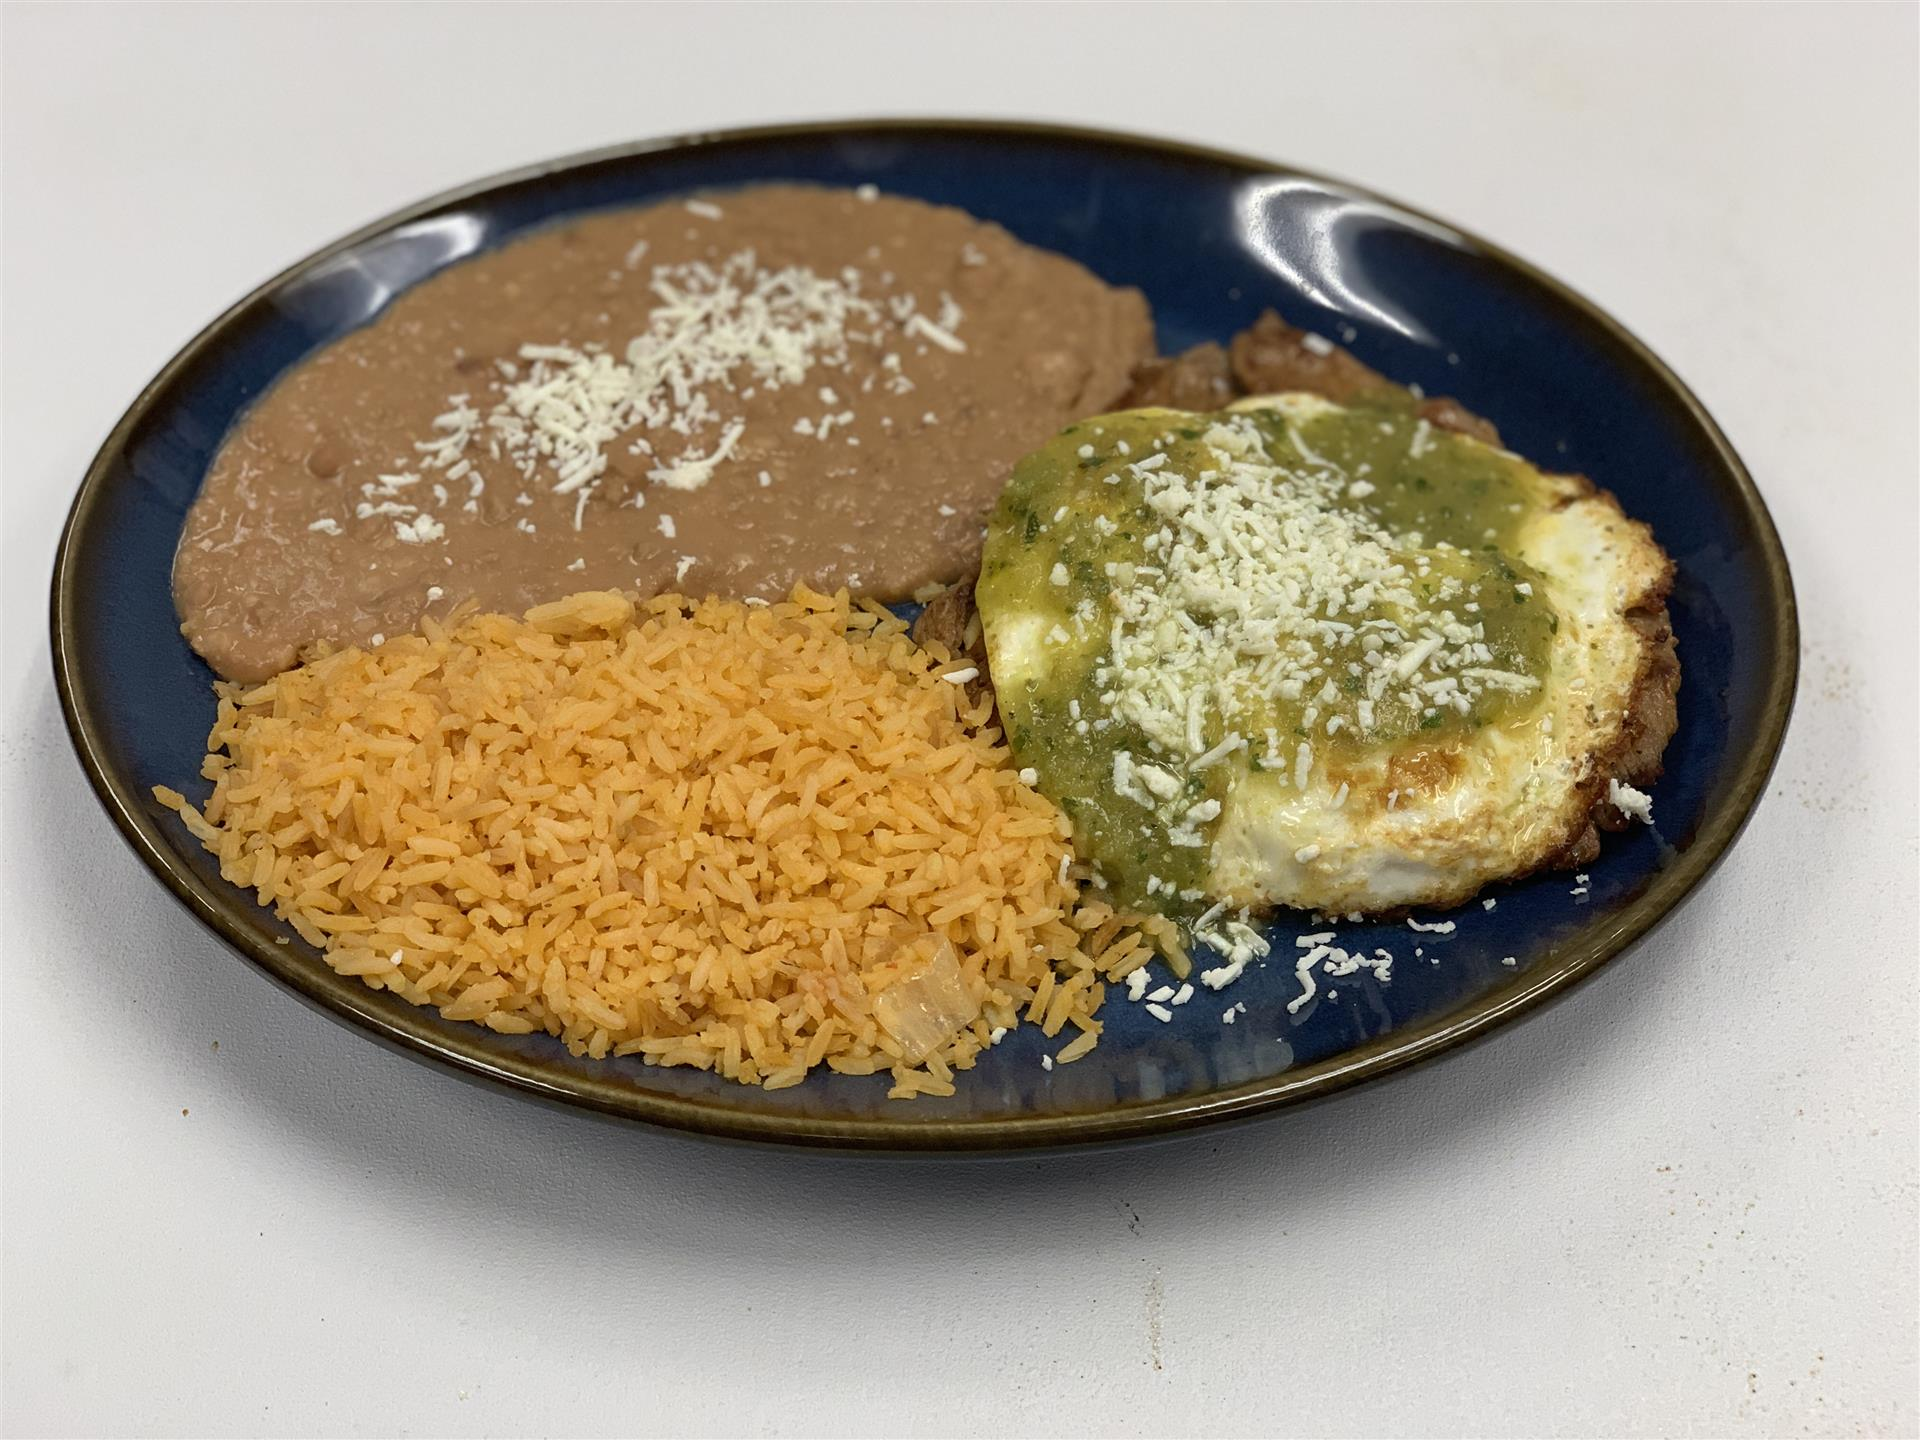 Huevos Azteca: Two eggs over easy, topped with cheese and green tomatillo sauce with carne asada, served with rice and beans